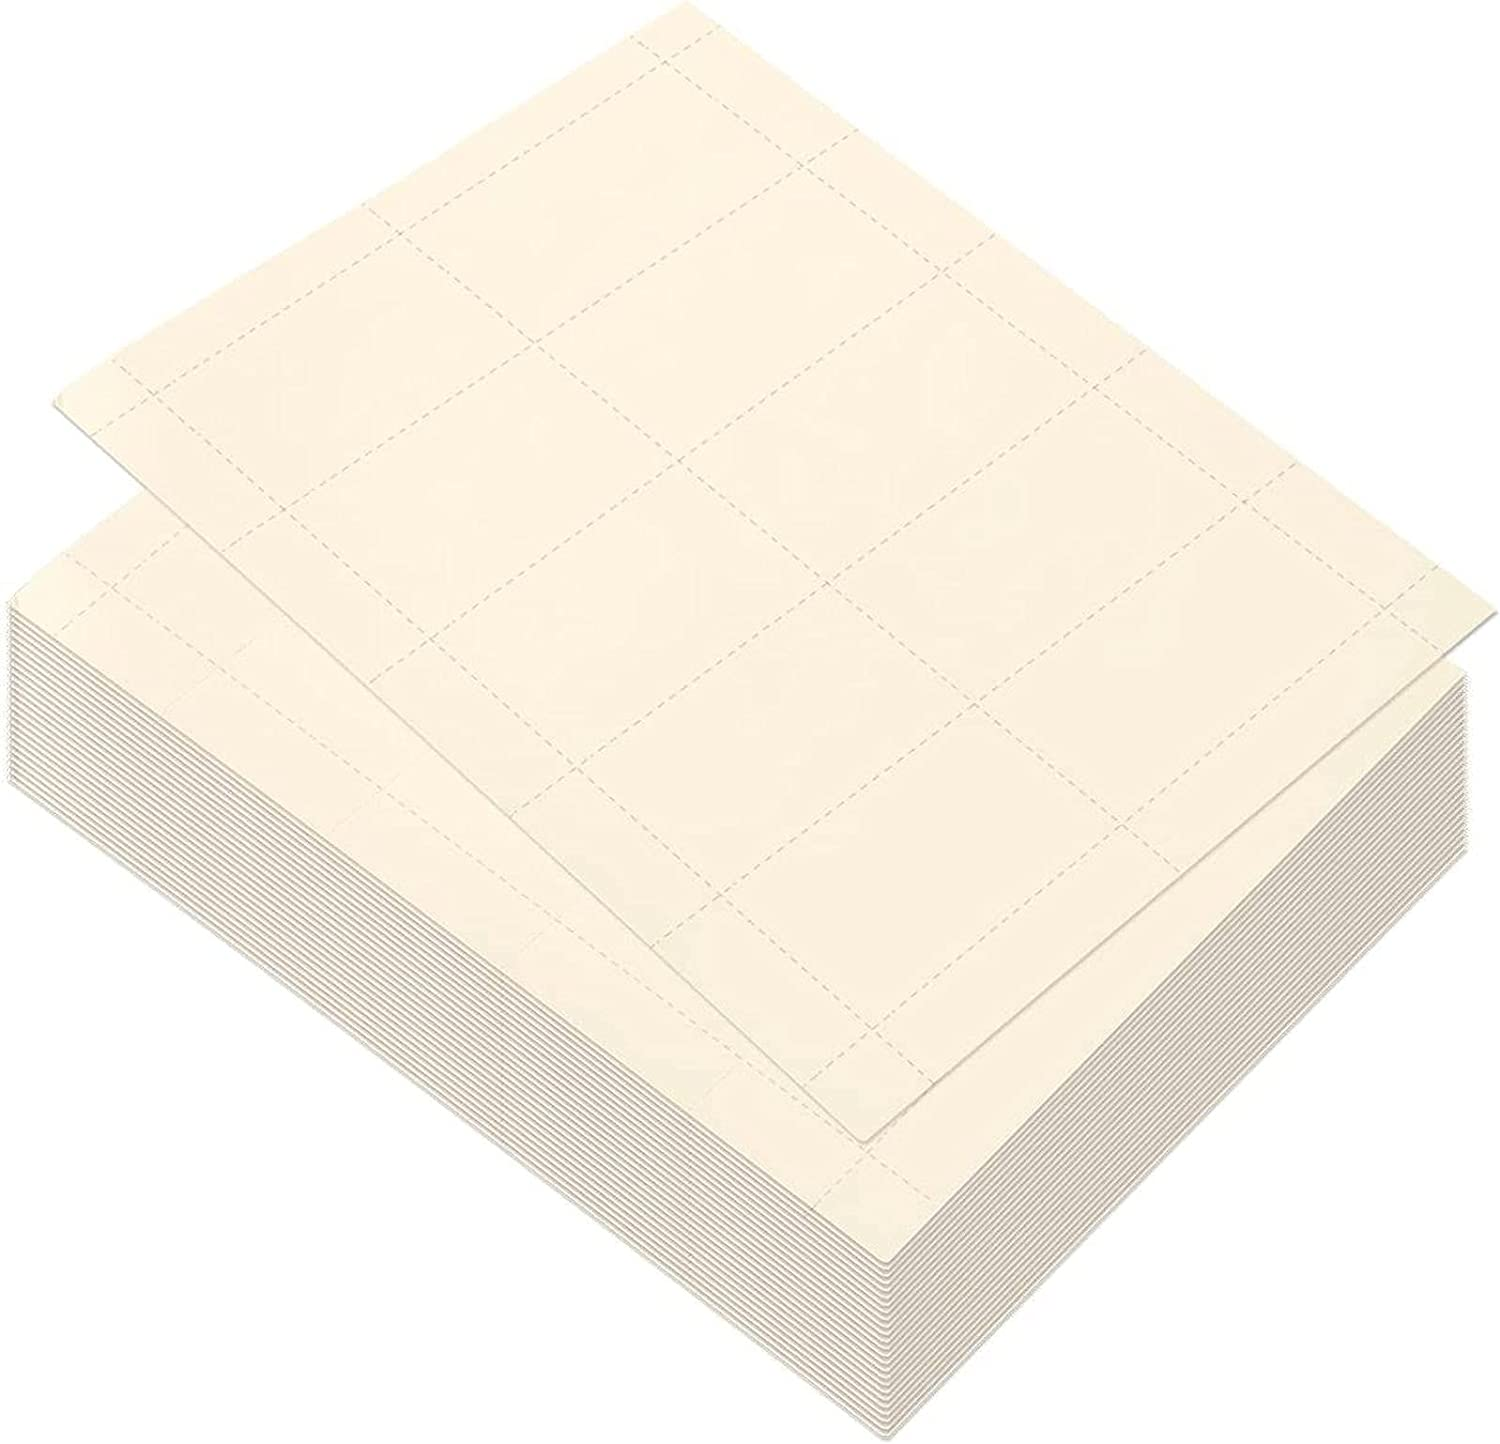 trust Business Card Paper Ivory Cardstock Laser Don't miss the campaign for Printe Inkjet and